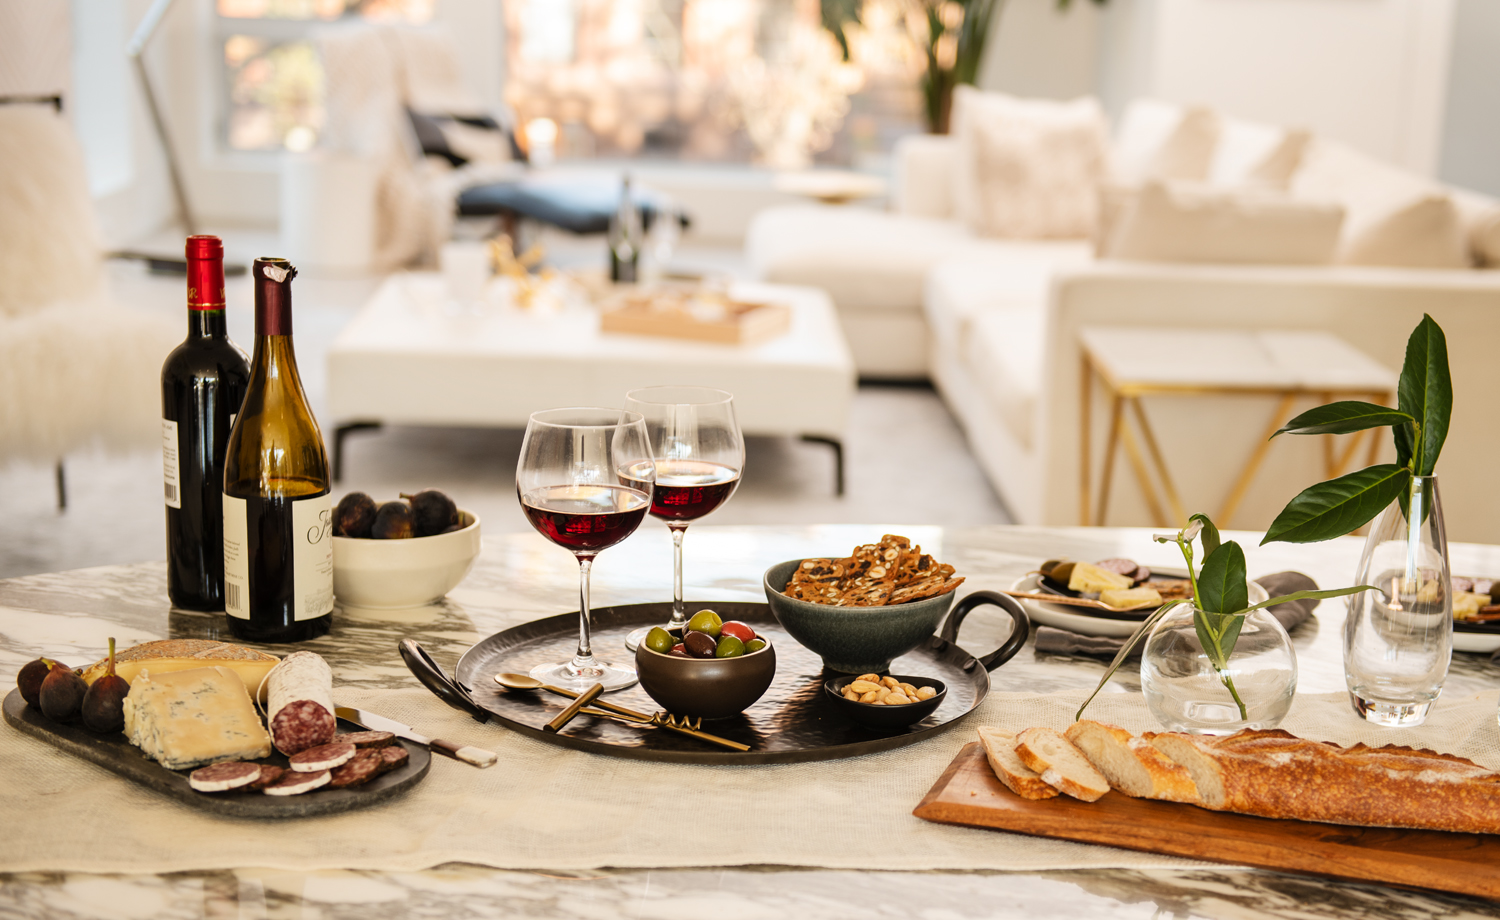 Wine and charcuterie tablescape in a modern kitchen. Shot by Michael Marquand for Modern Charcuterie.